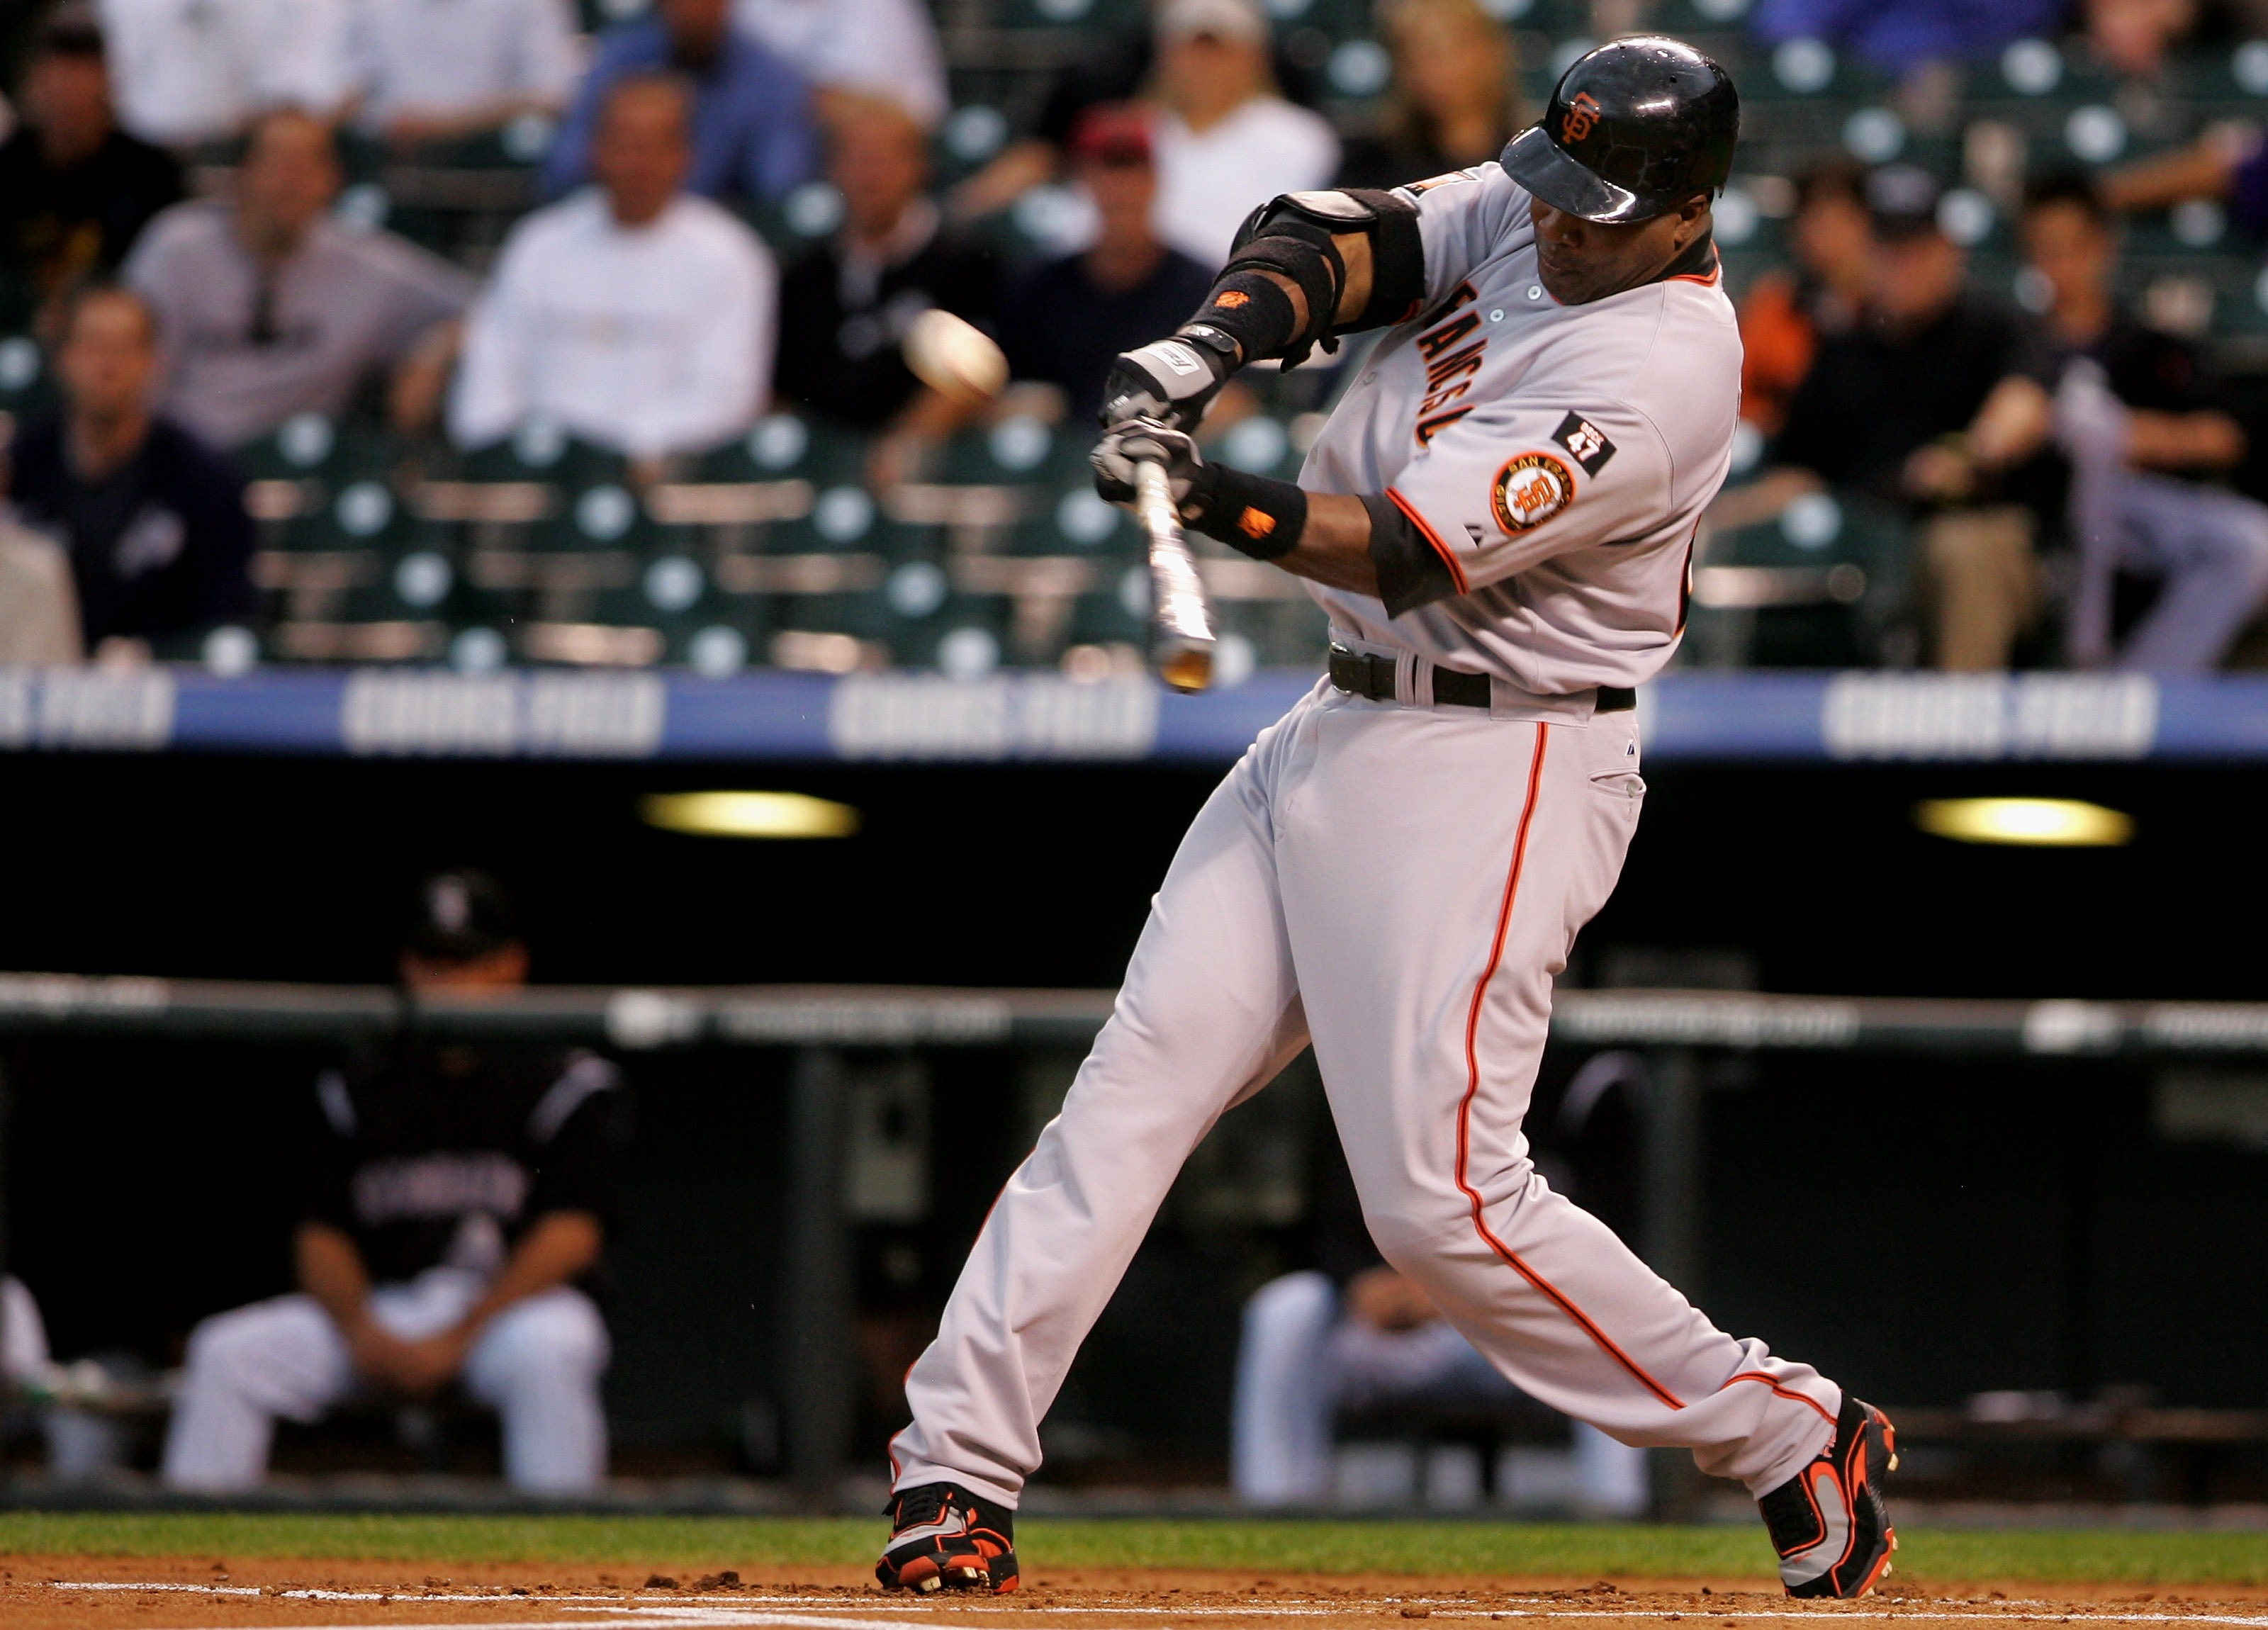 Barry Bonds is the greatest hitter of his generation.